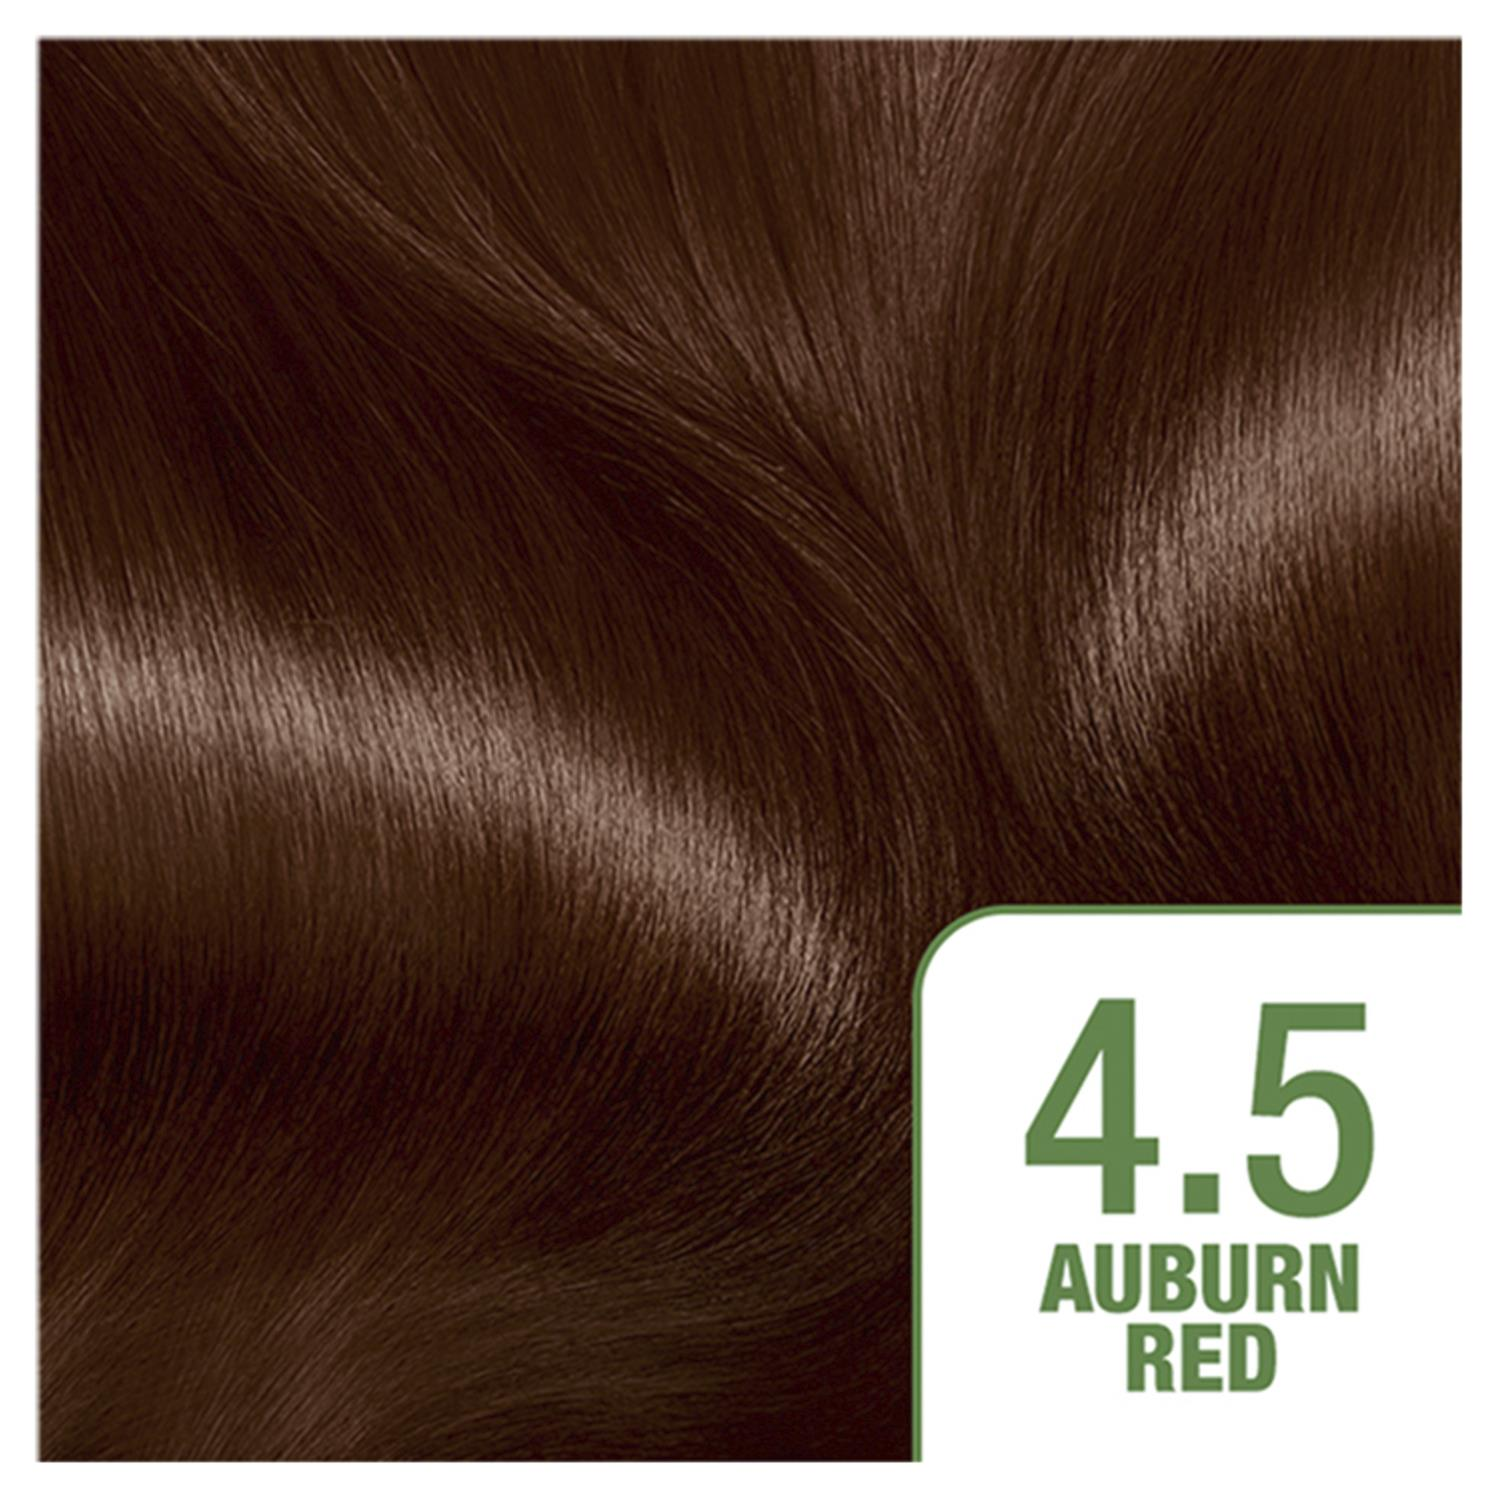 thumbnail 91 - 3 Pack Garnier Nutrisse Permanent Hair Dye With Different Shades